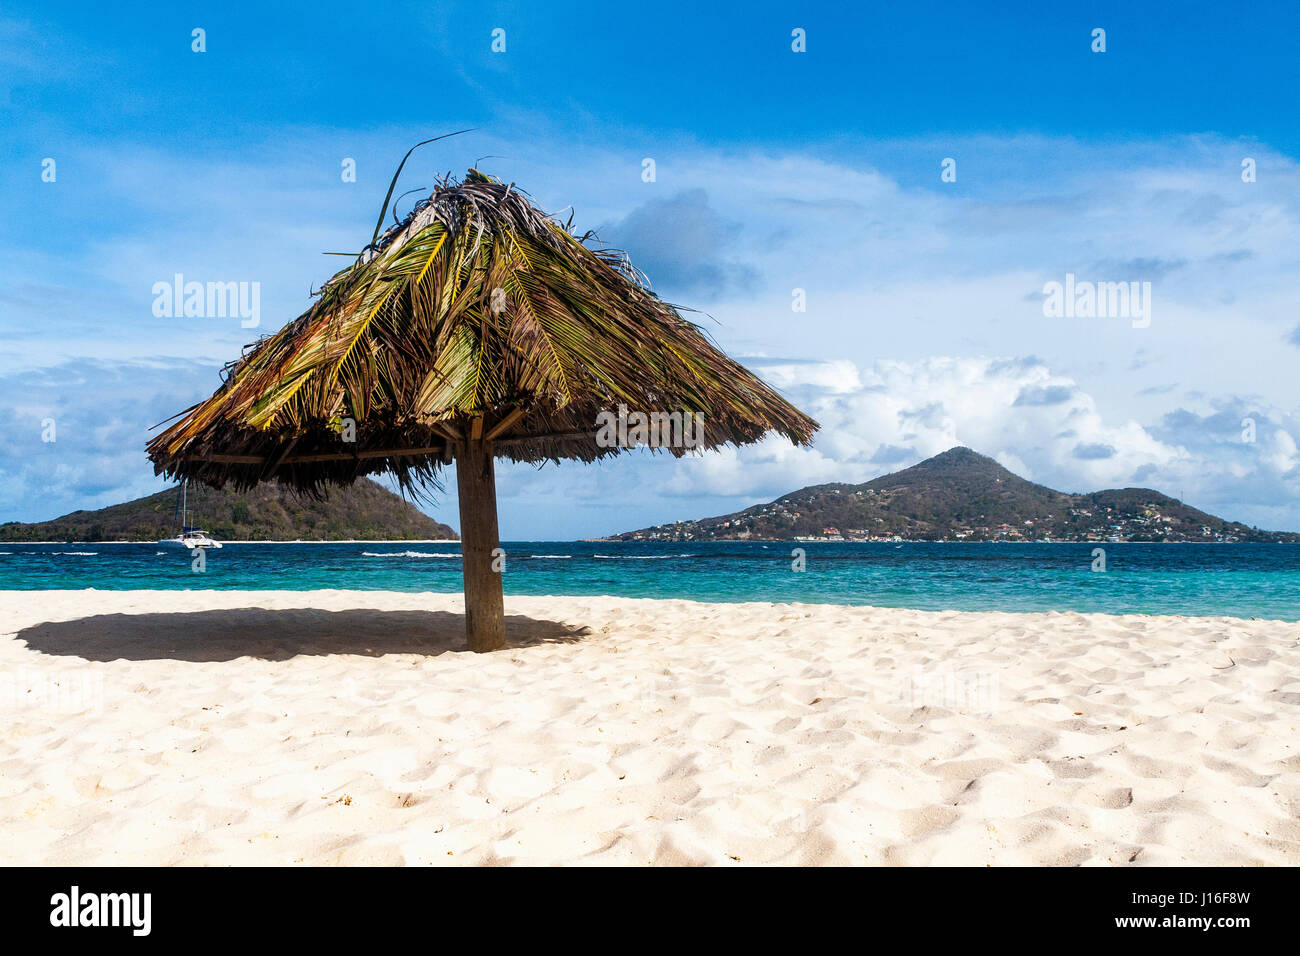 Caribbean View from Mopian Island: Solitary Parasol and Islands: Saint Vincent and the Grenadines. - Stock Image